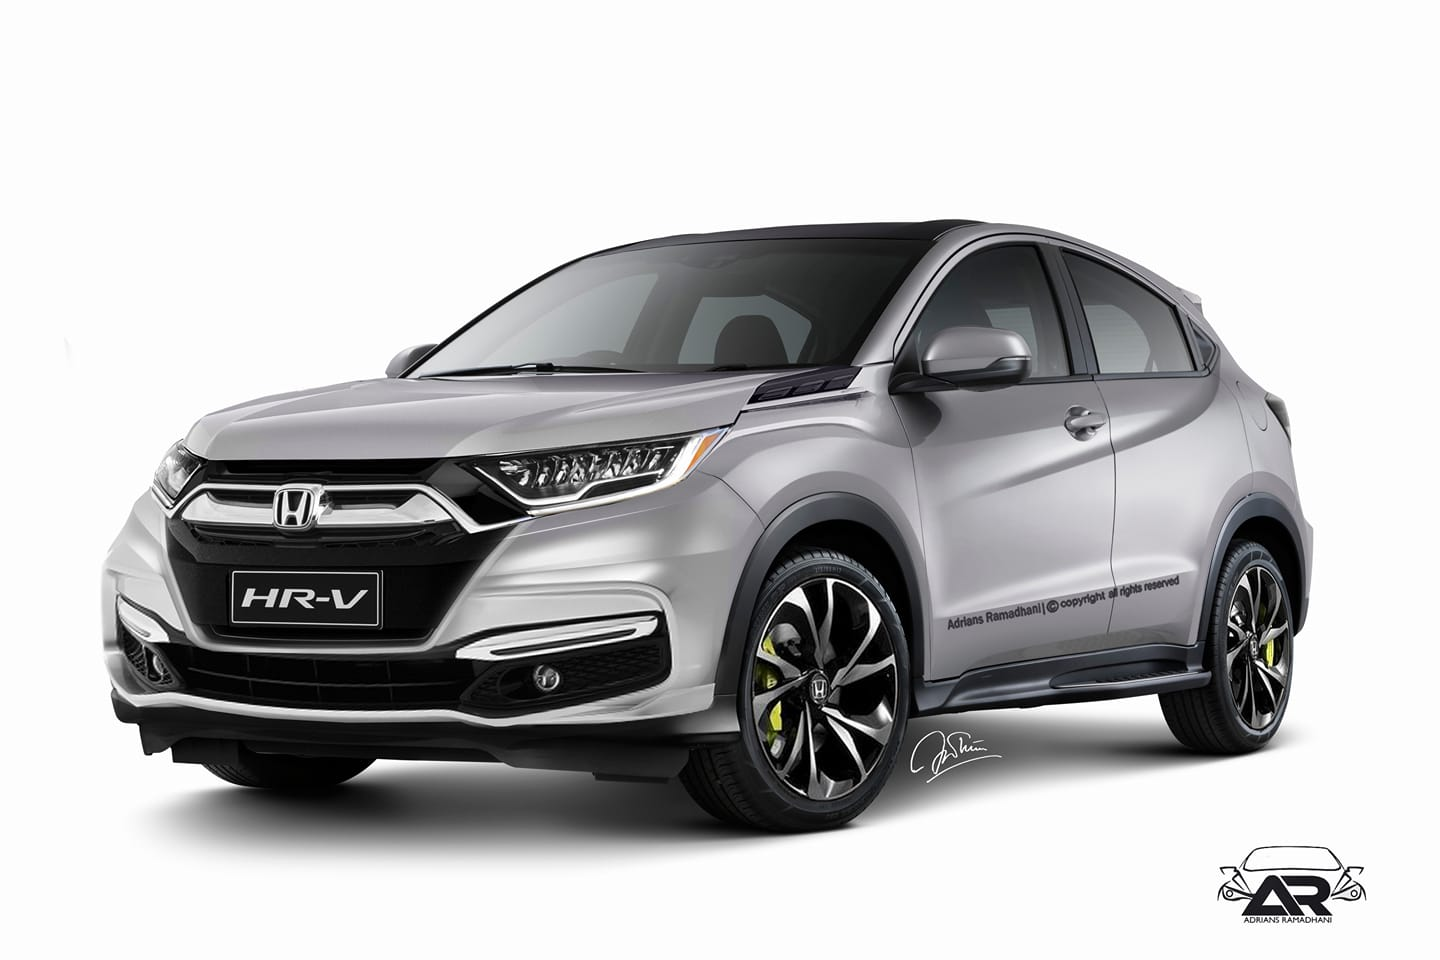 2018 honda hr v facelift rendering. Black Bedroom Furniture Sets. Home Design Ideas